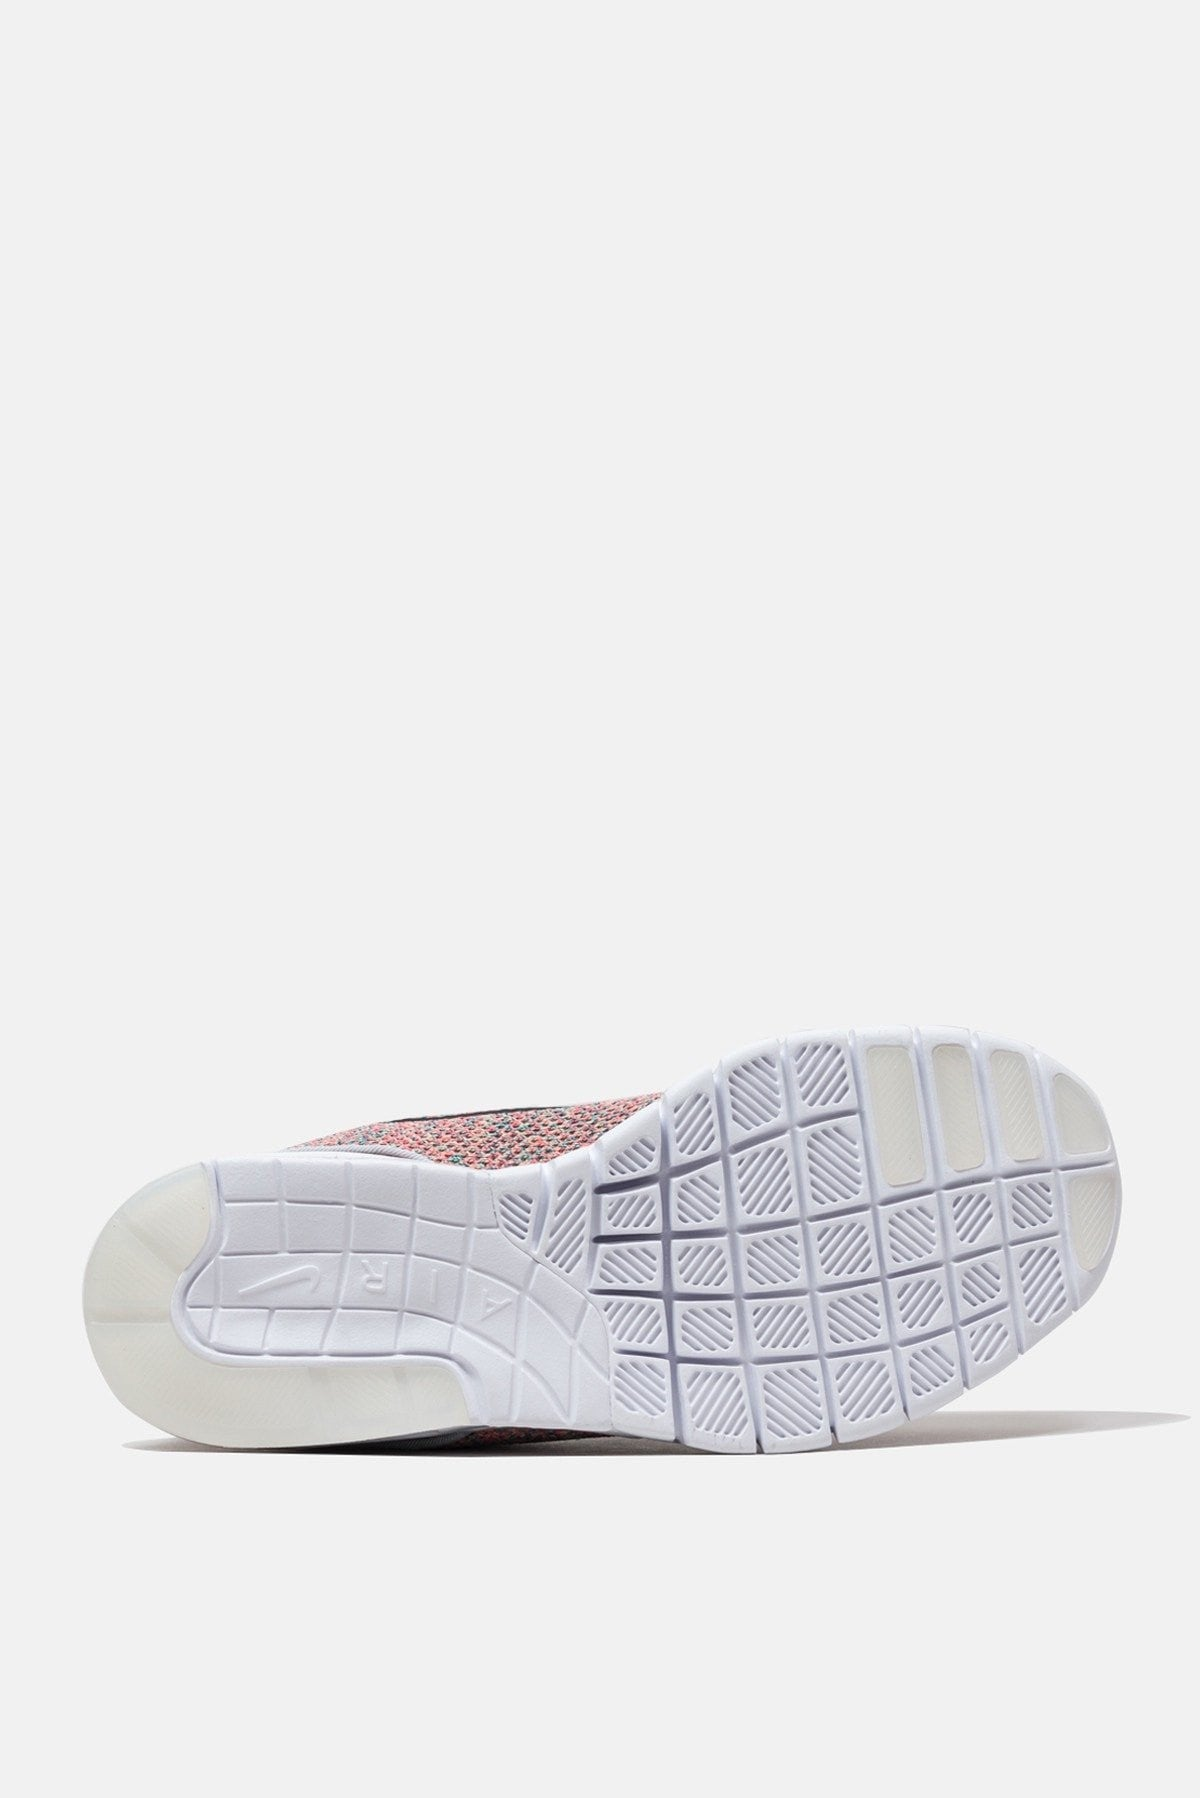 98e0ce0cdbf Nike SB Stefan Janoski Max Air Max Day Shoes available from Priory